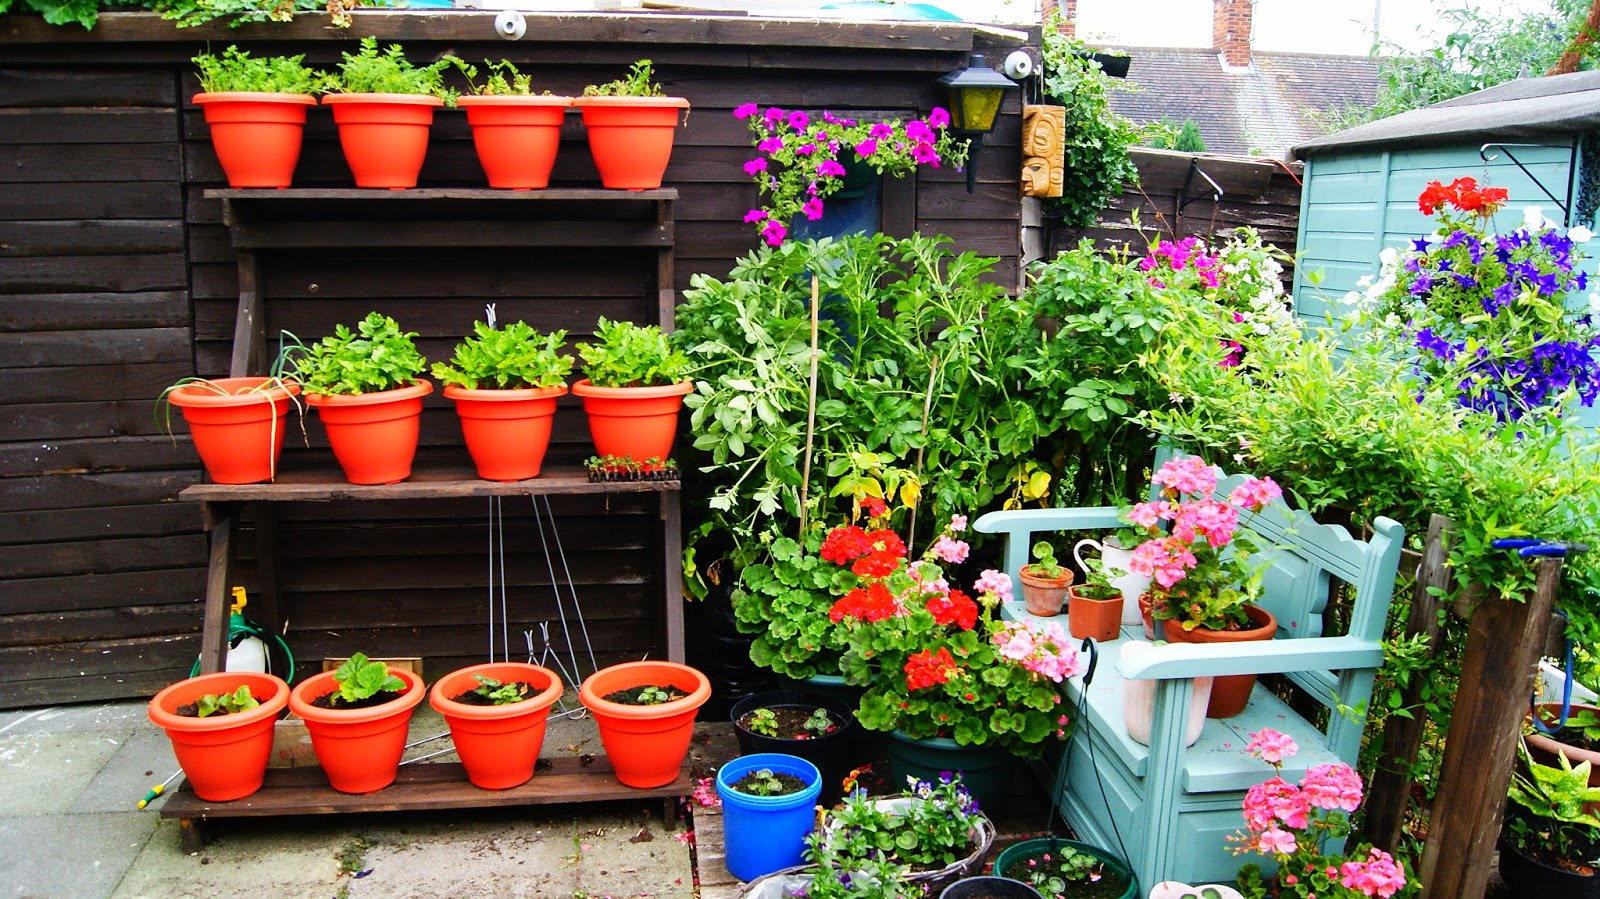 The Syders Thrifty Garden Build A Vertical Vegetable Garden